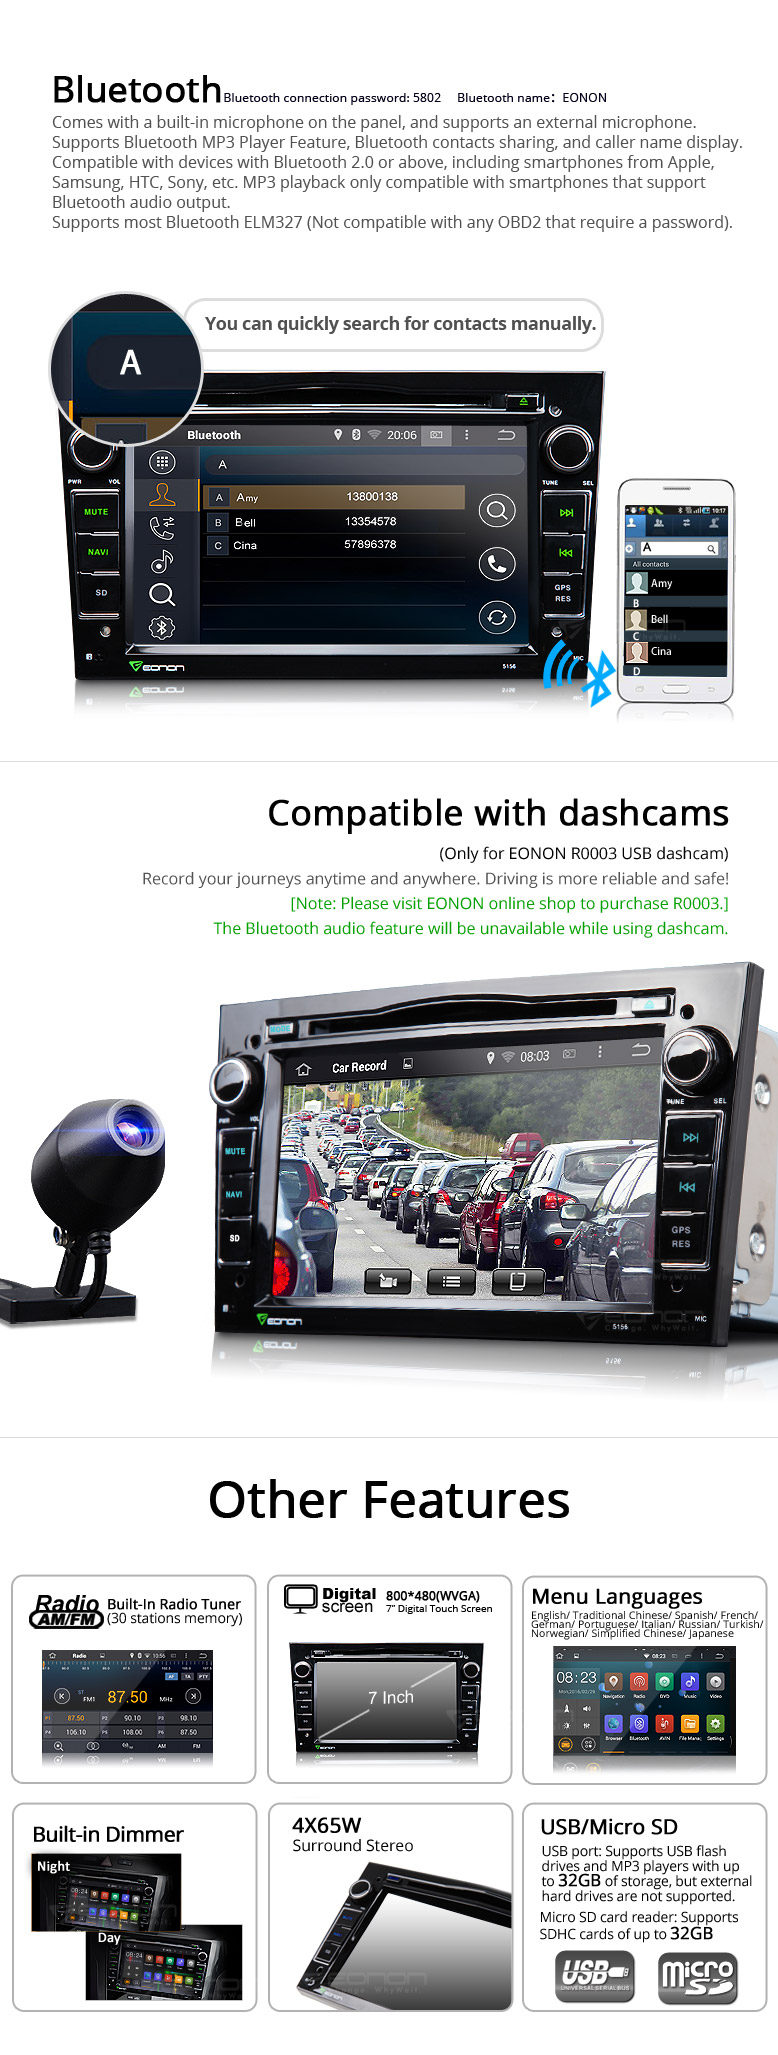 Android 4.4.4 Quad-Core 7 inch Multimedia Car DVD player with GPS